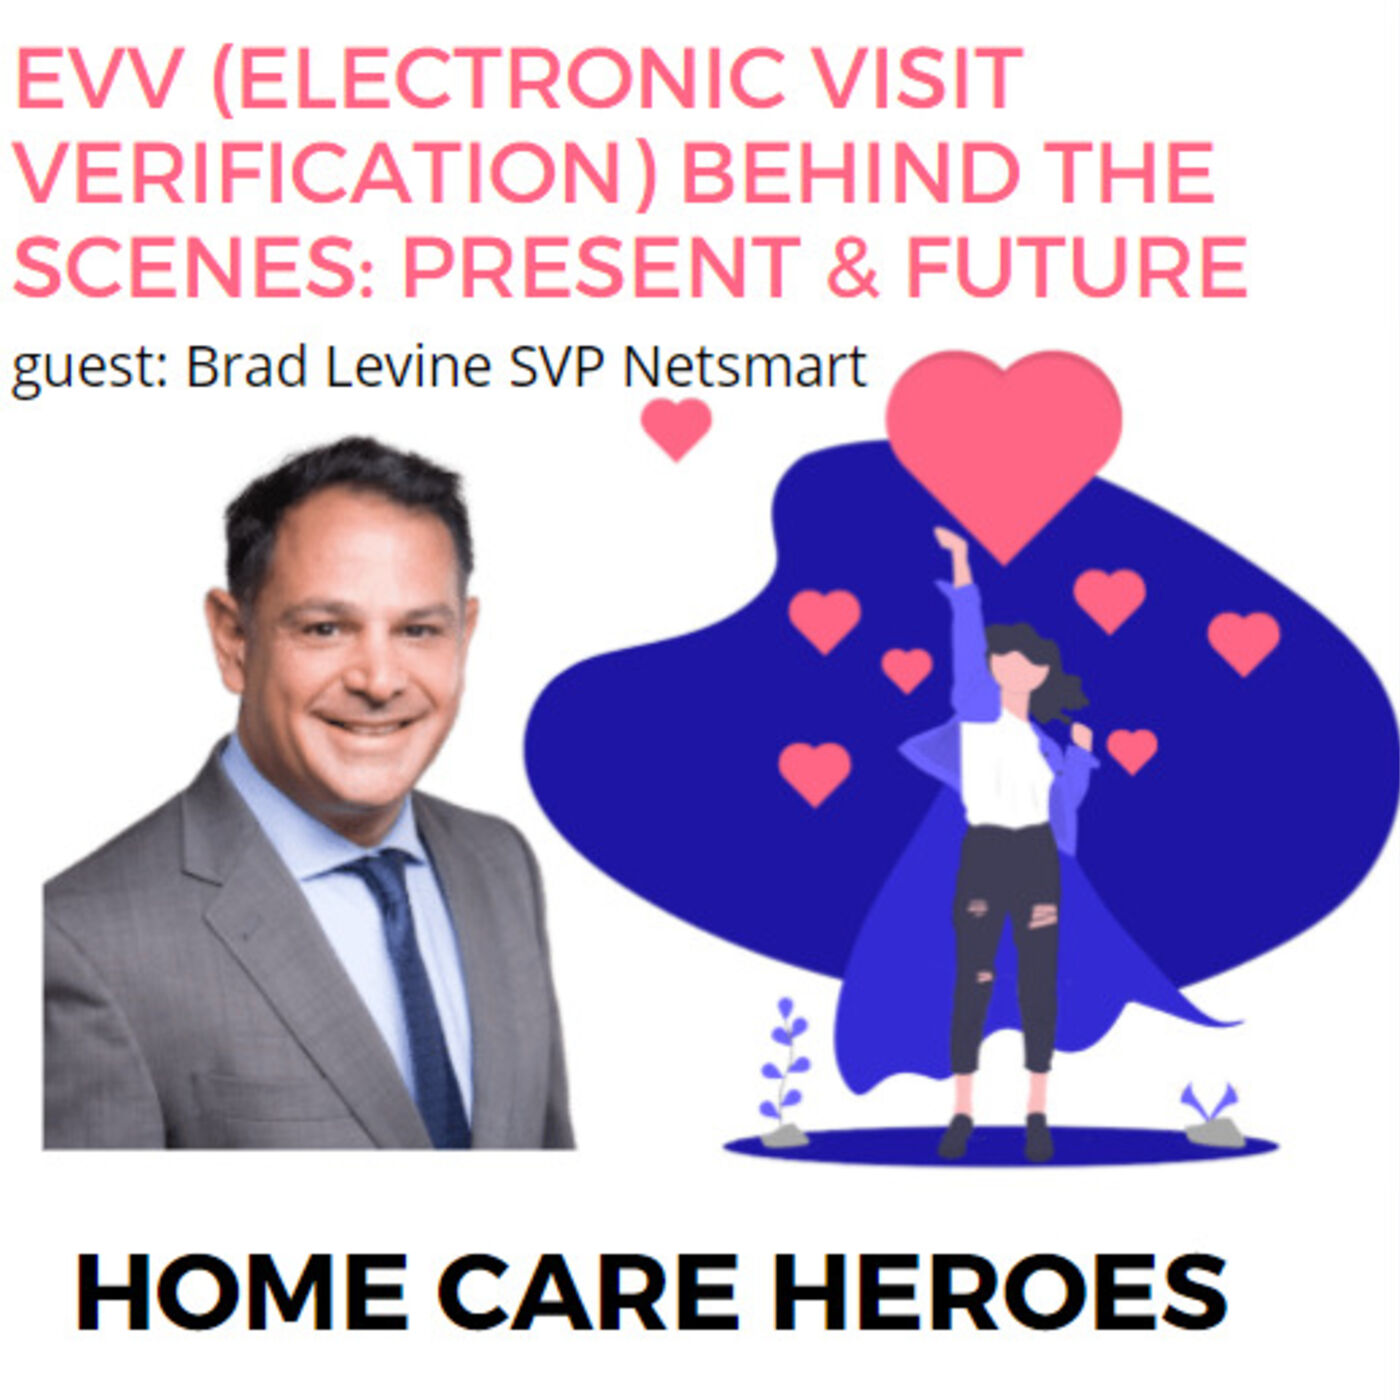 EVV (Electronic Visit Verification) Behind the scenes: Present & Future with Brad Levine from Netsmart